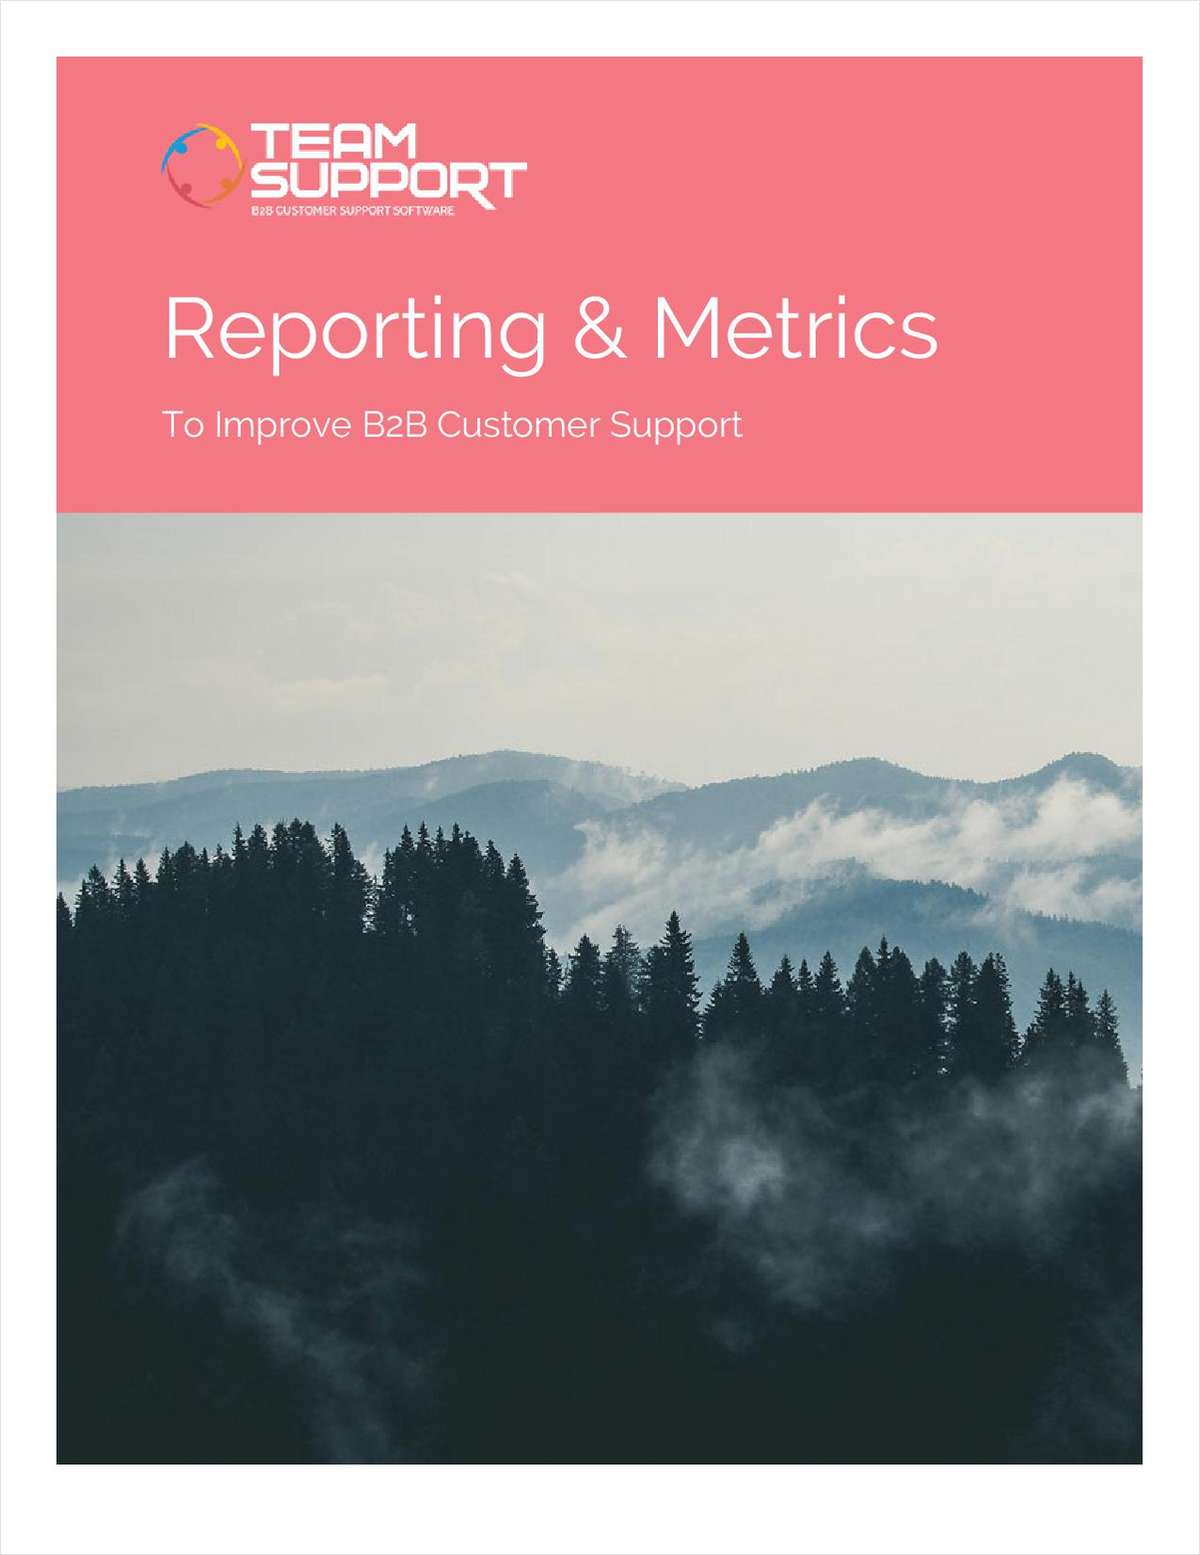 Reporting & Metrics to Improve B2B Customer Support